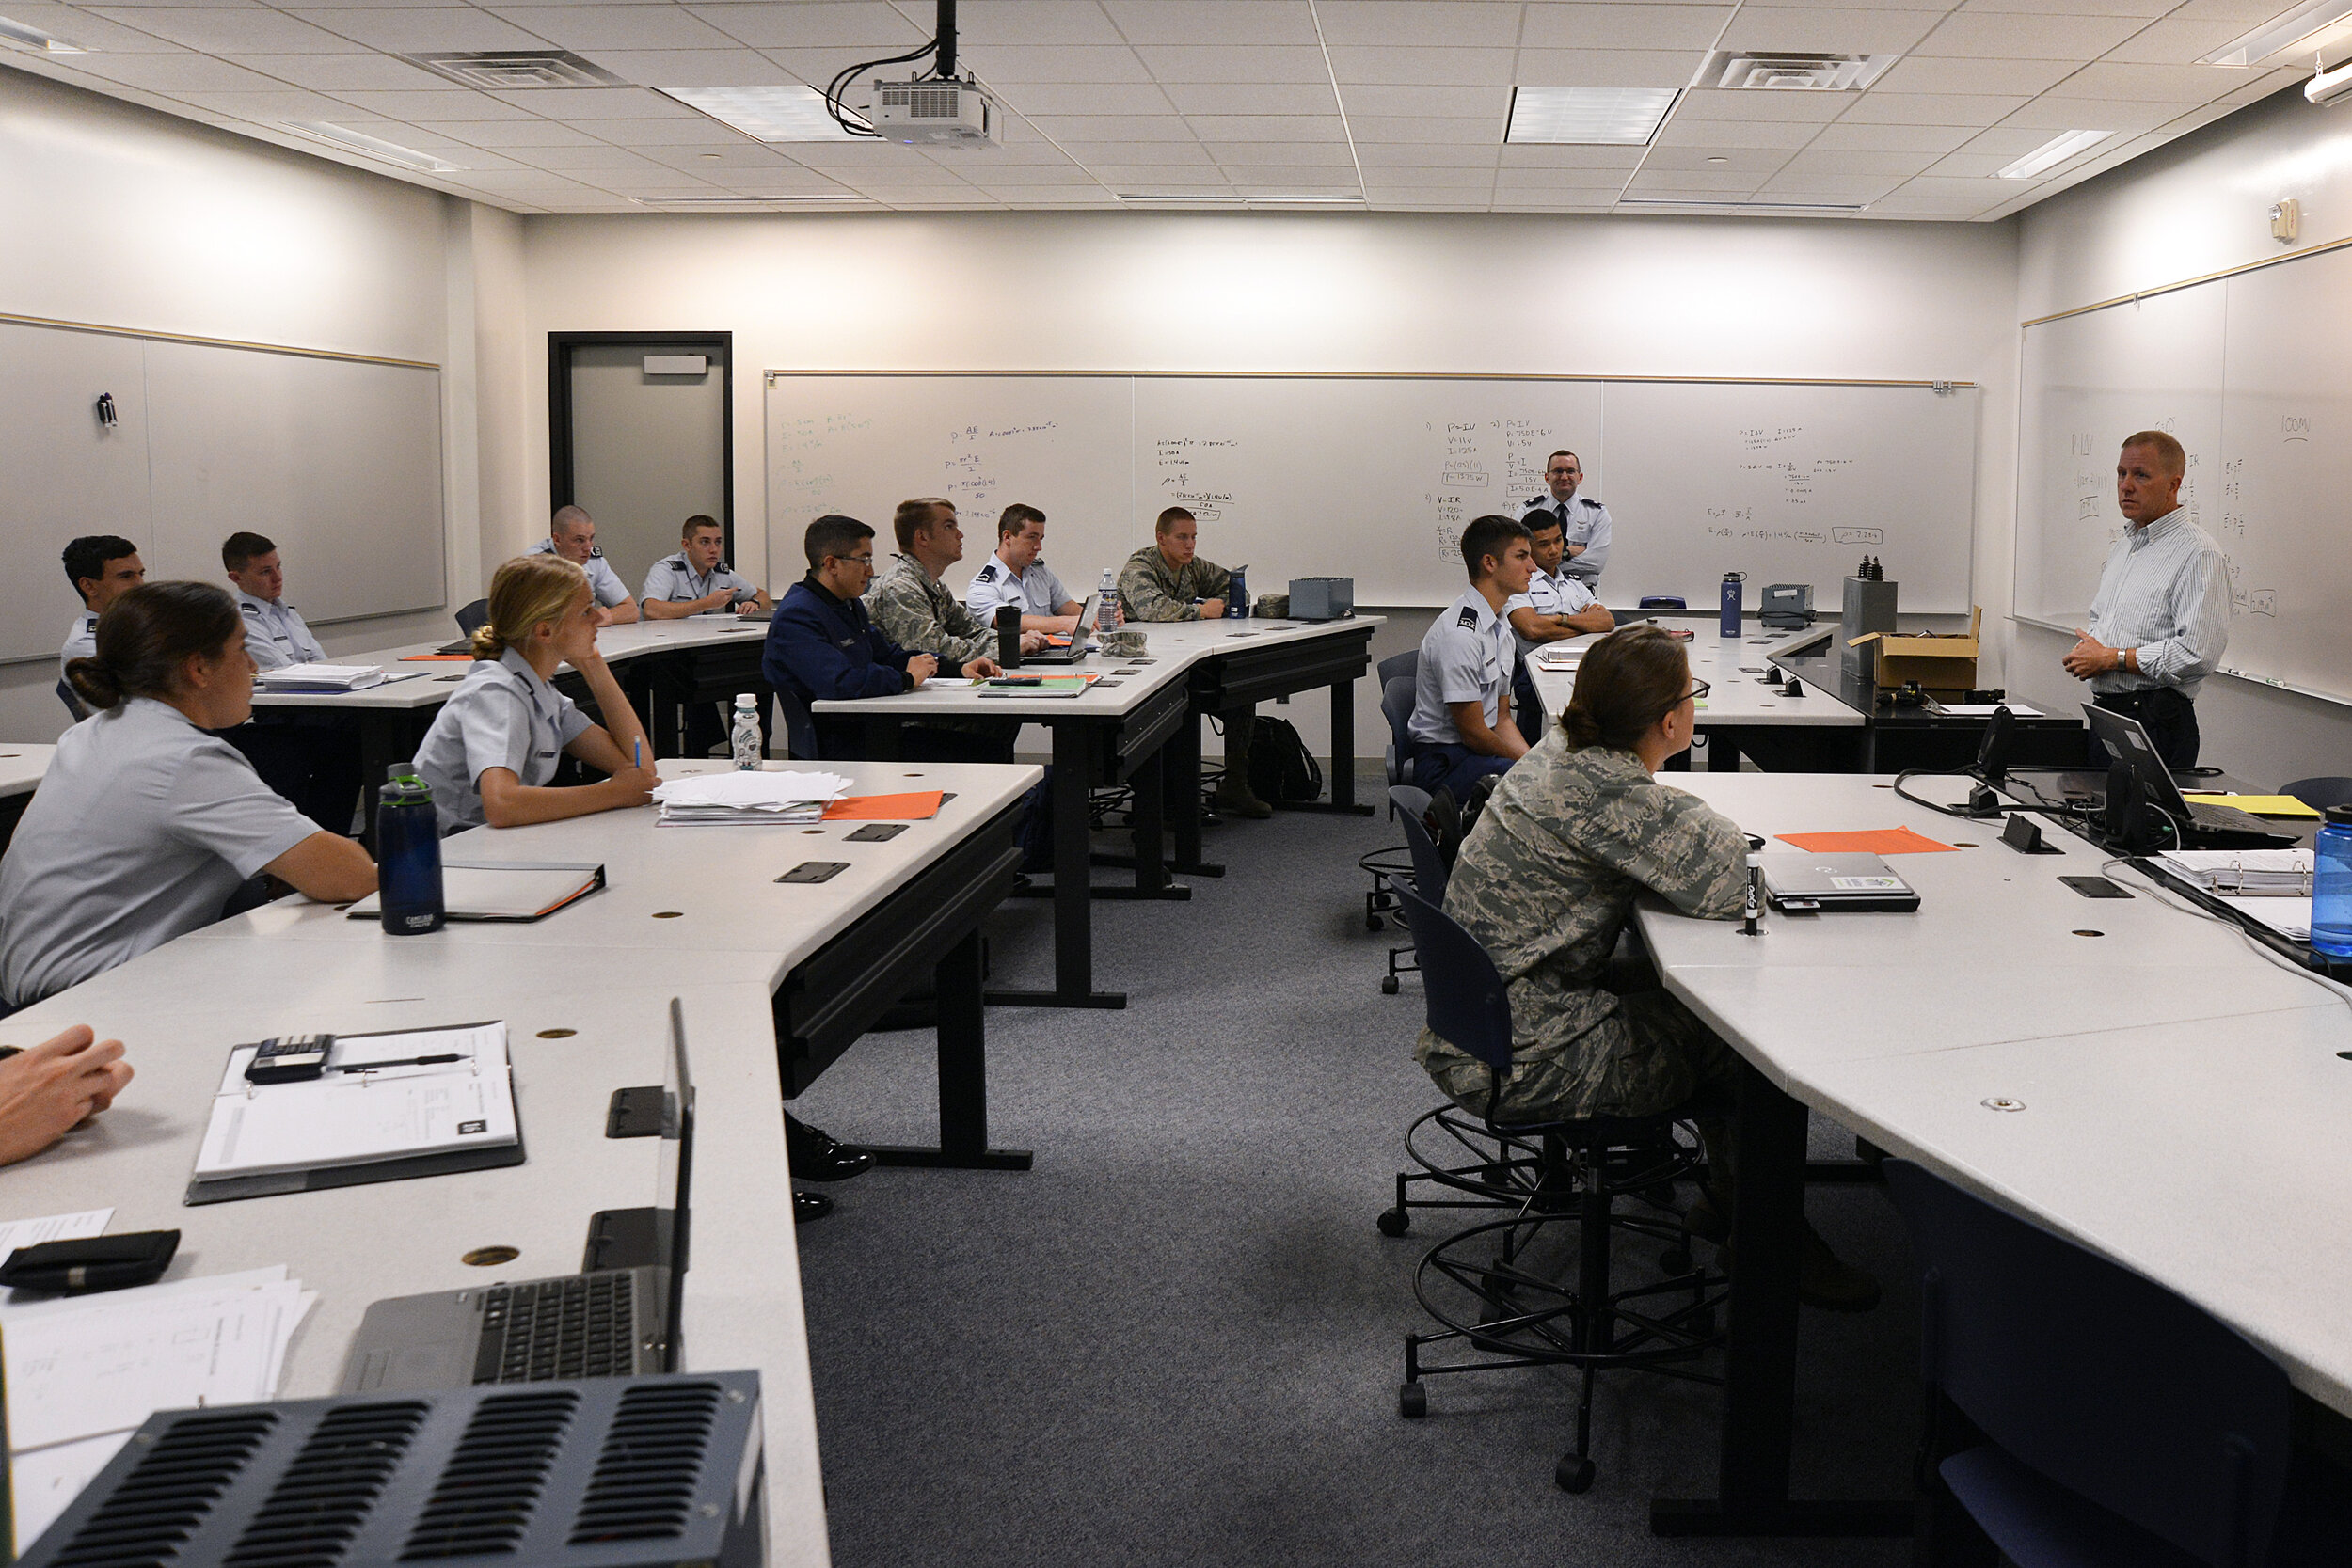 Students at the US Air Force Academy in Colorado Springs, Colorado